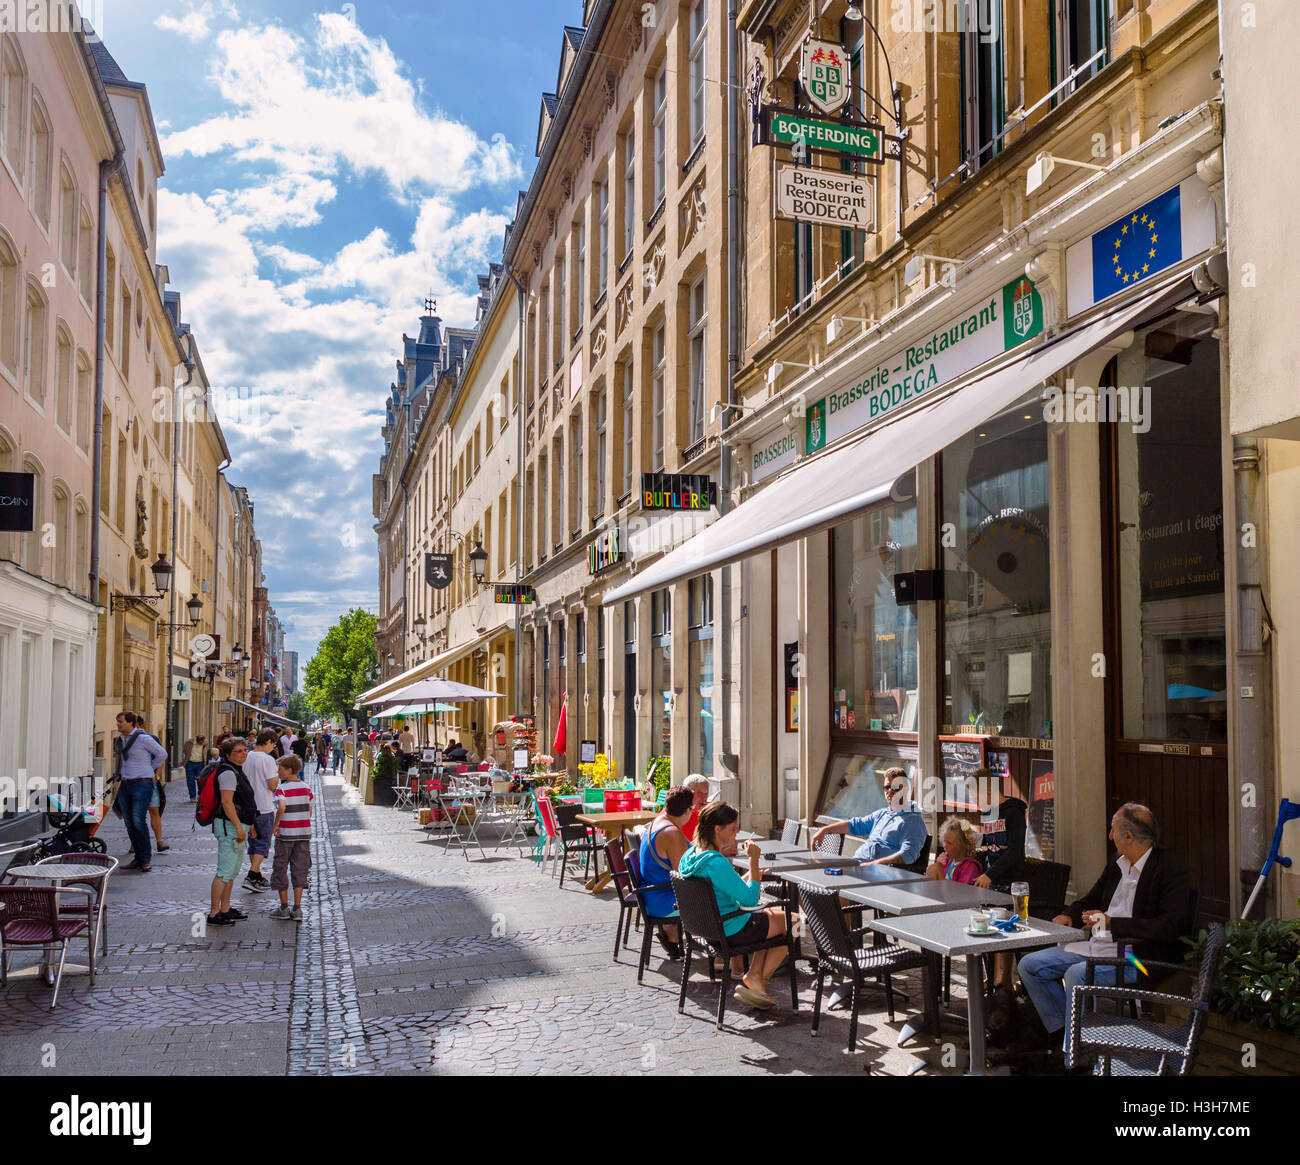 Cafes on Rue du Cure in the old town (La Vieille Ville), Luxembourg city, Luxembourg - Stock Image